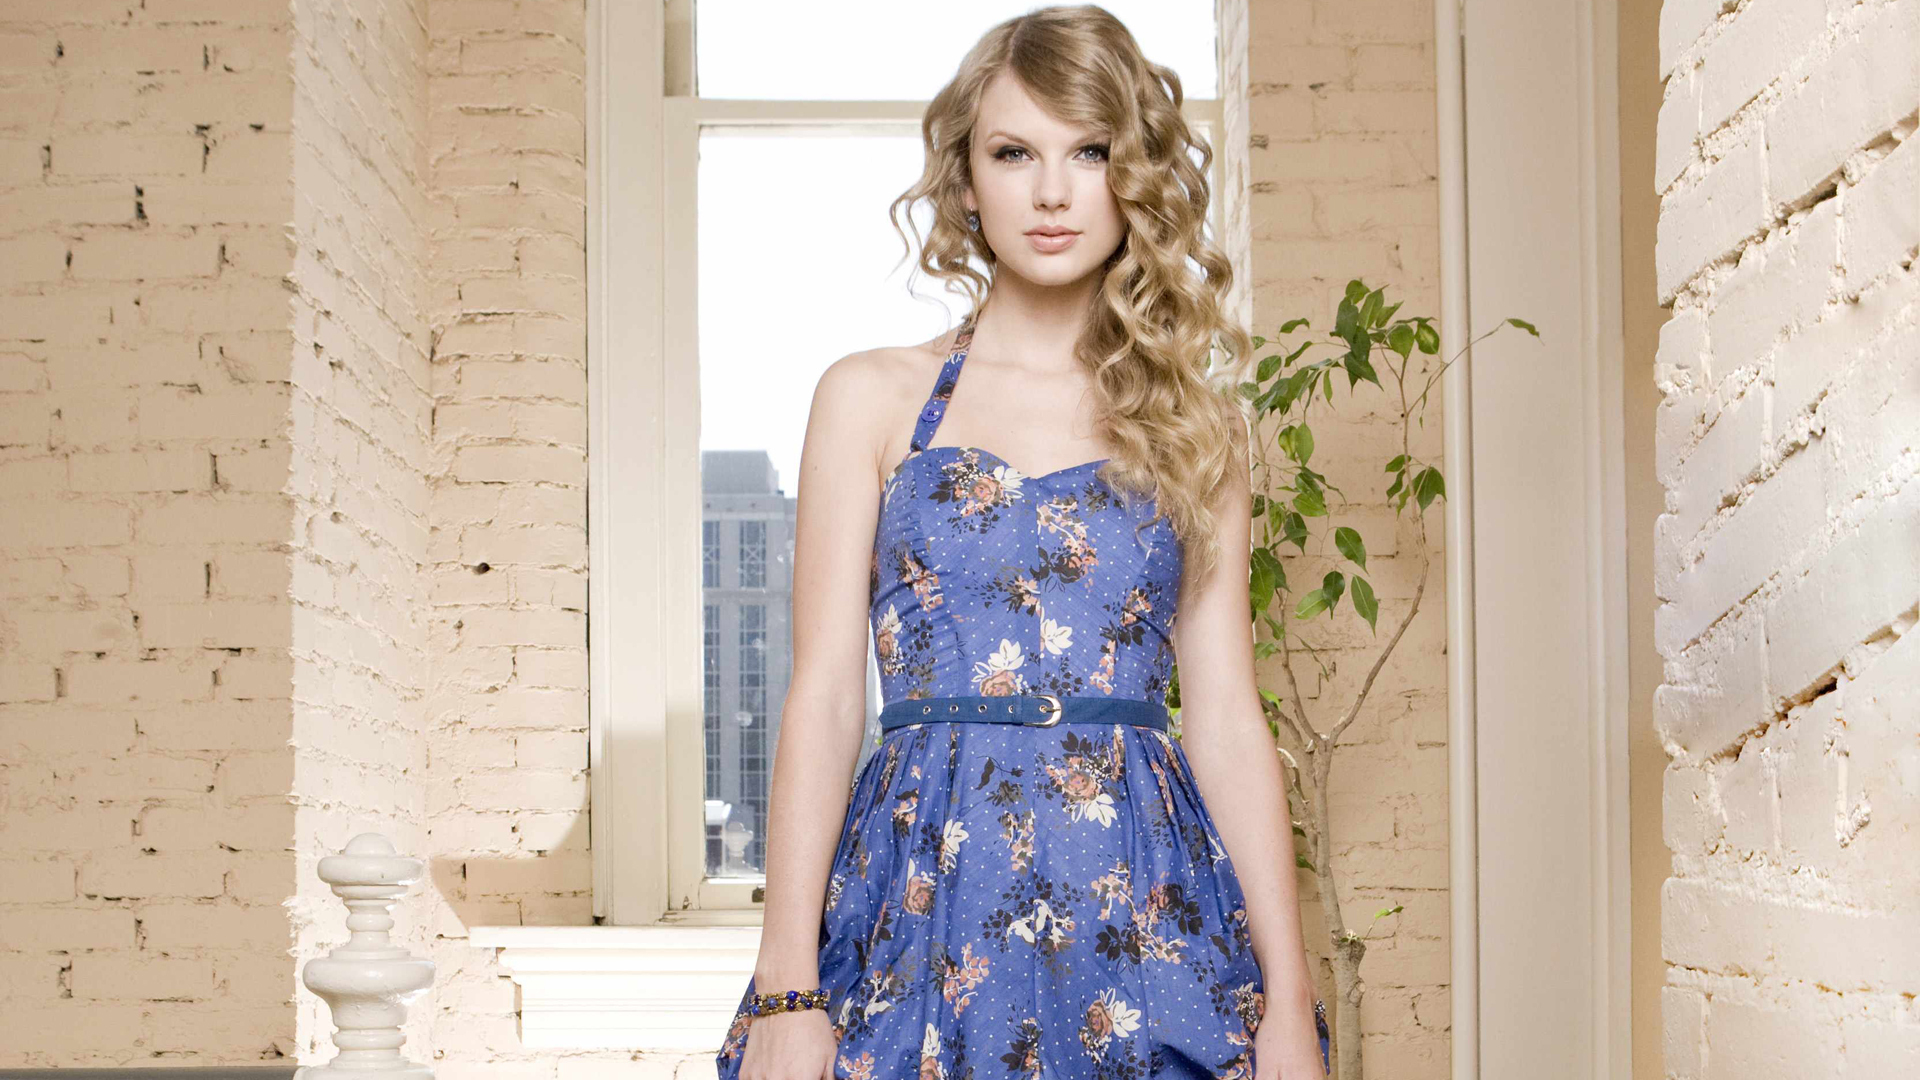 taylor swift fantastic stylish look background free desktop mobile photos hd